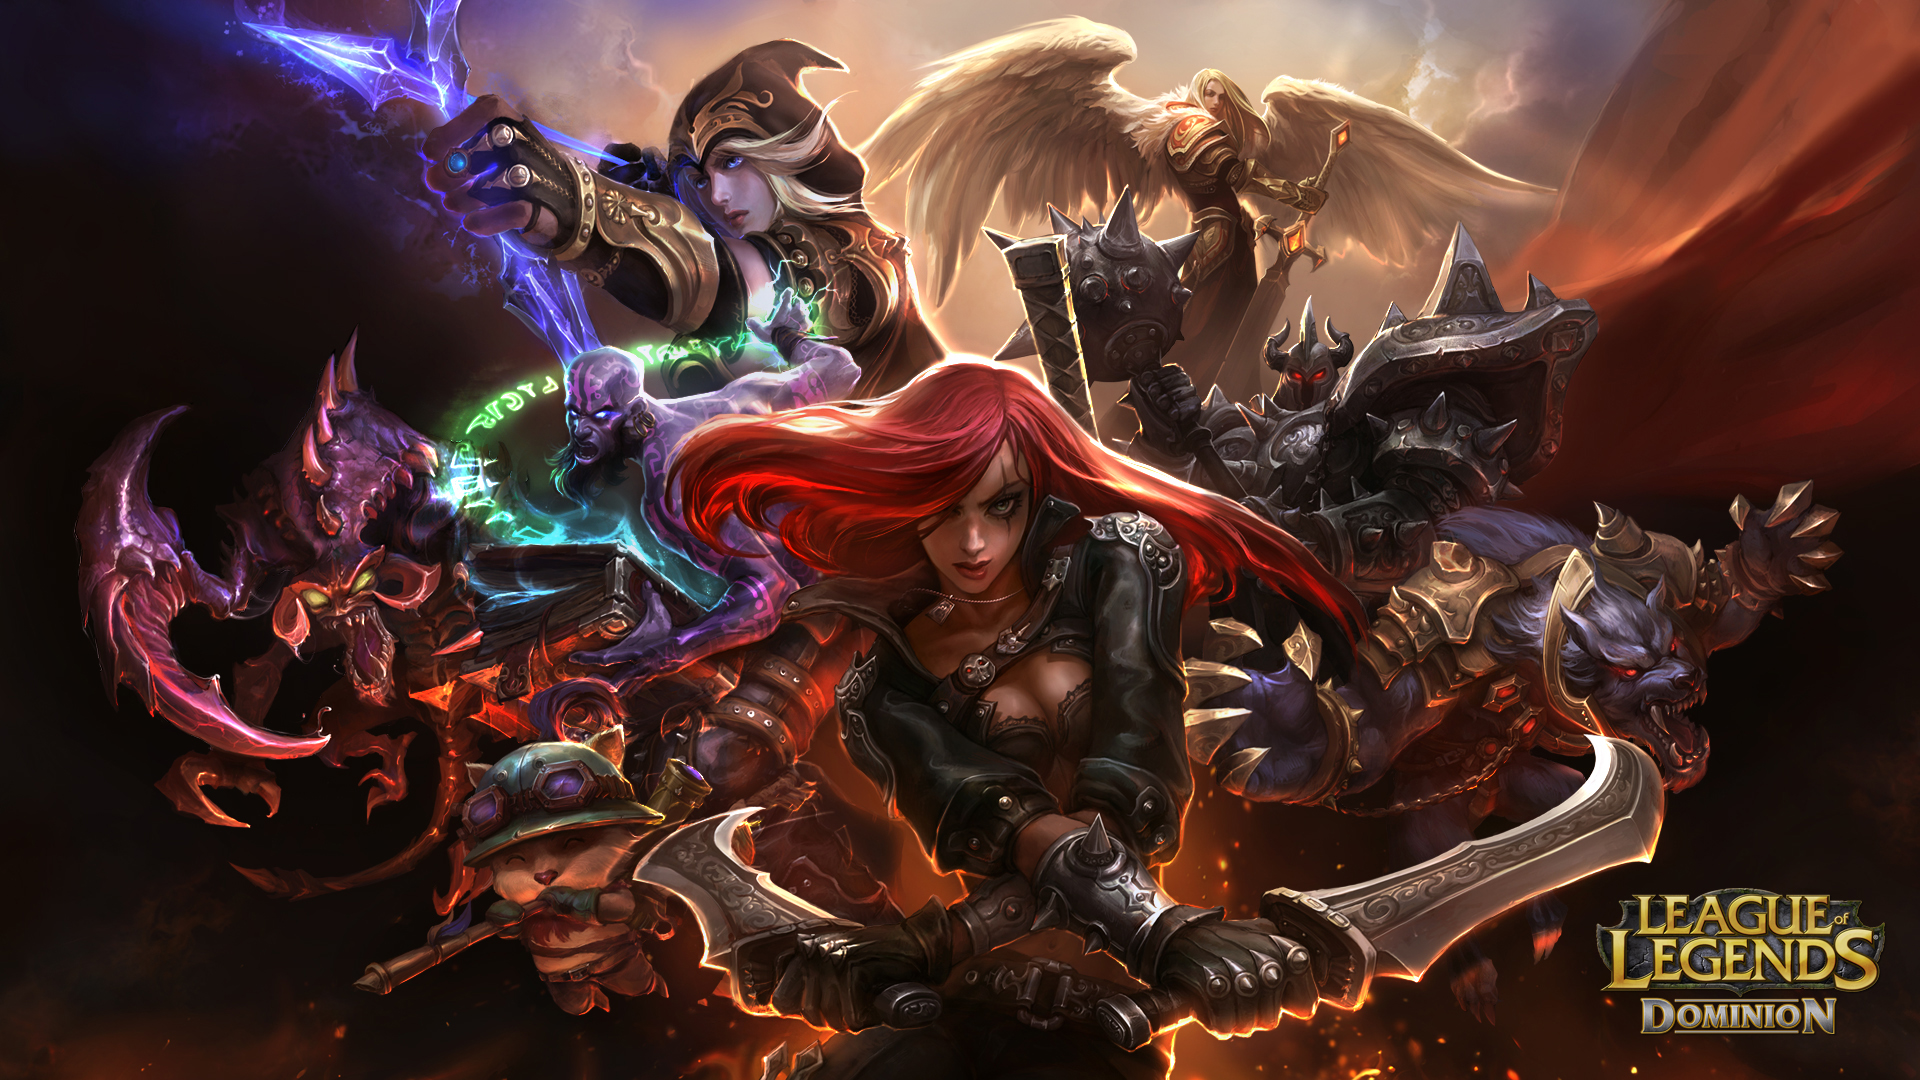 League of Legends wallpaper 5